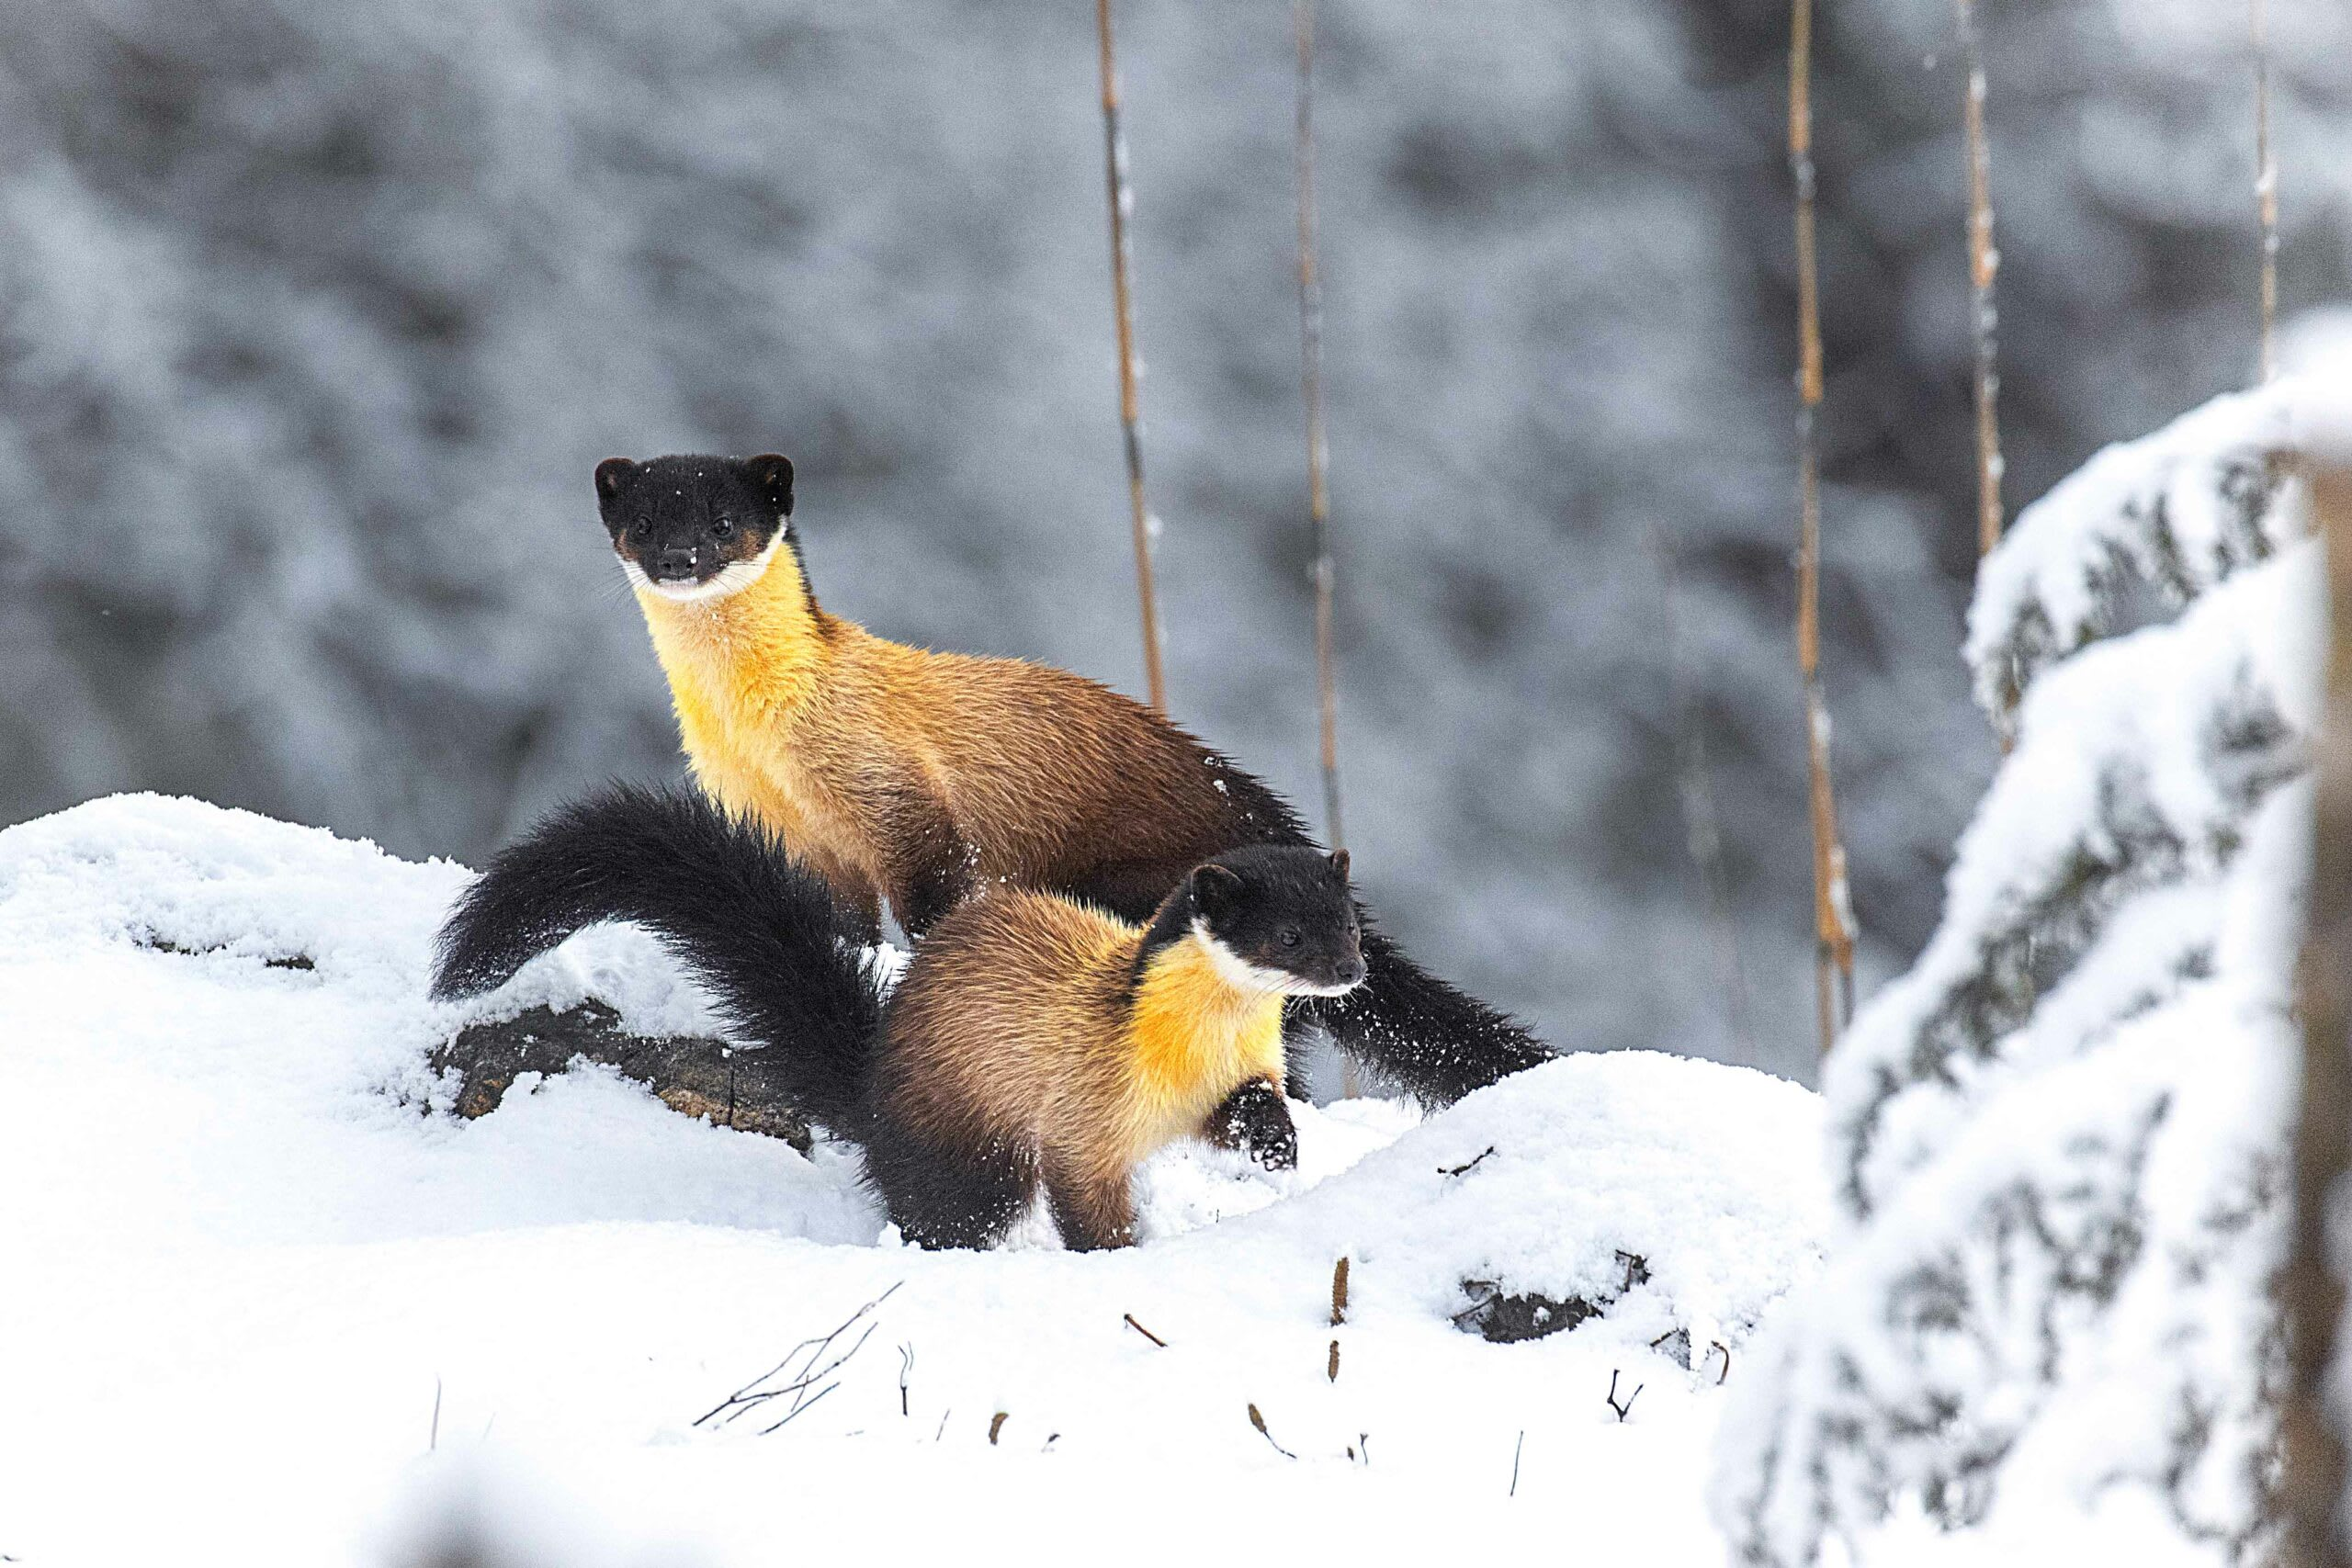 """Lonnie Grassman, who studied yellow-throated martens in Thailand's Phu Khiao Wildlife Sanctuary, remembers seeing """"adult pairs, running around the roads together, quite vocal, running in circles."""" His study showed that the average range of yellow-throated martens was about seven sq km, though he could not say how many individuals shared a territory. In a phone interview with the biologist, who currently studies wild felids in Texas, he said, martens reminded him of otters,  """"very curious, very active, very fast.""""  Photo: Sourav Mondal"""